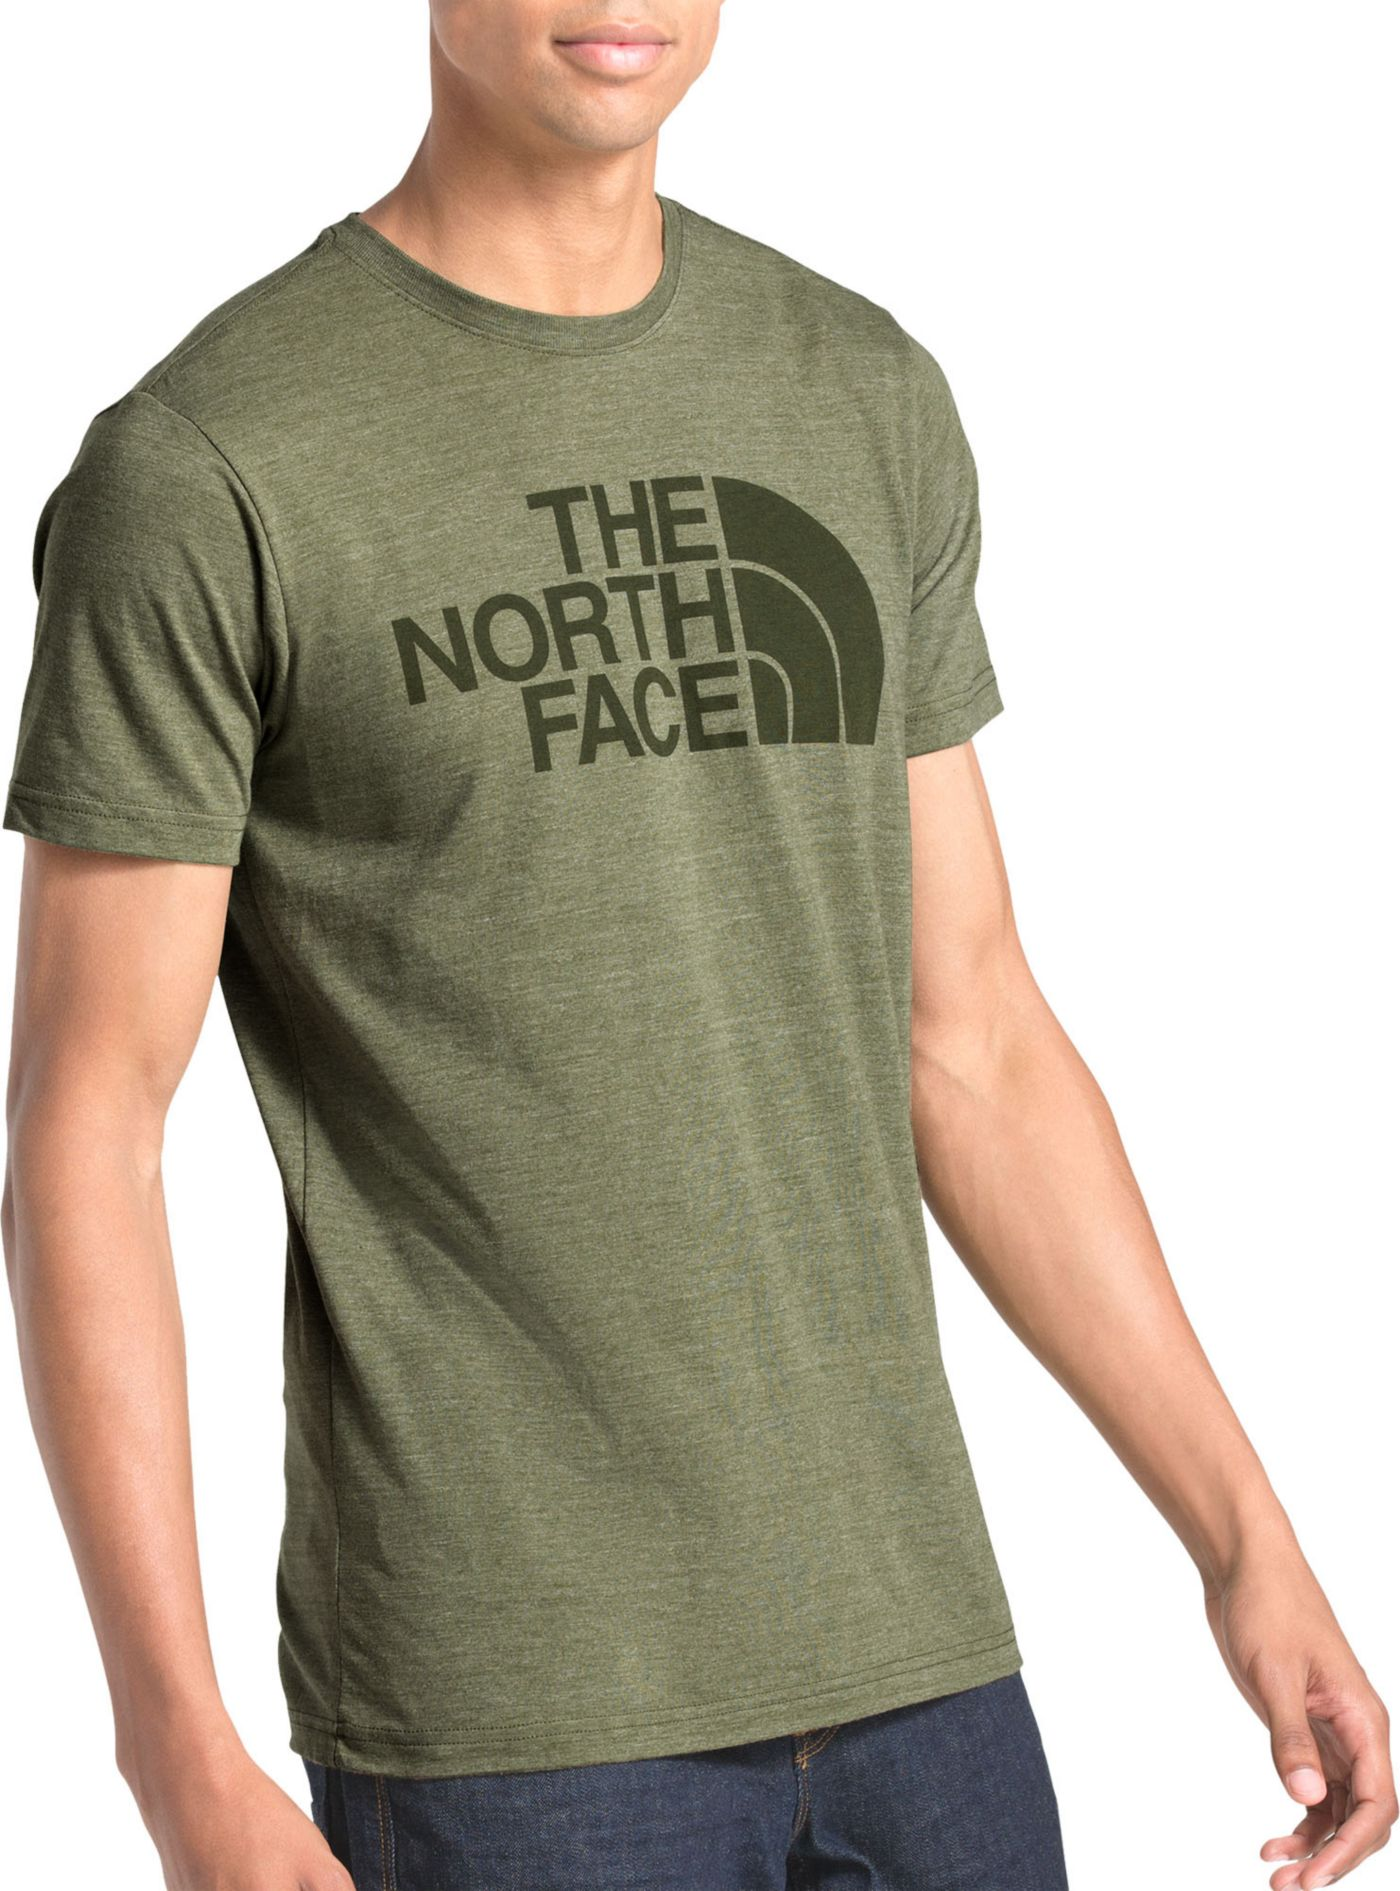 The North Face Men's Short Sleeve Half Dome Tri-Blend T-Shirt